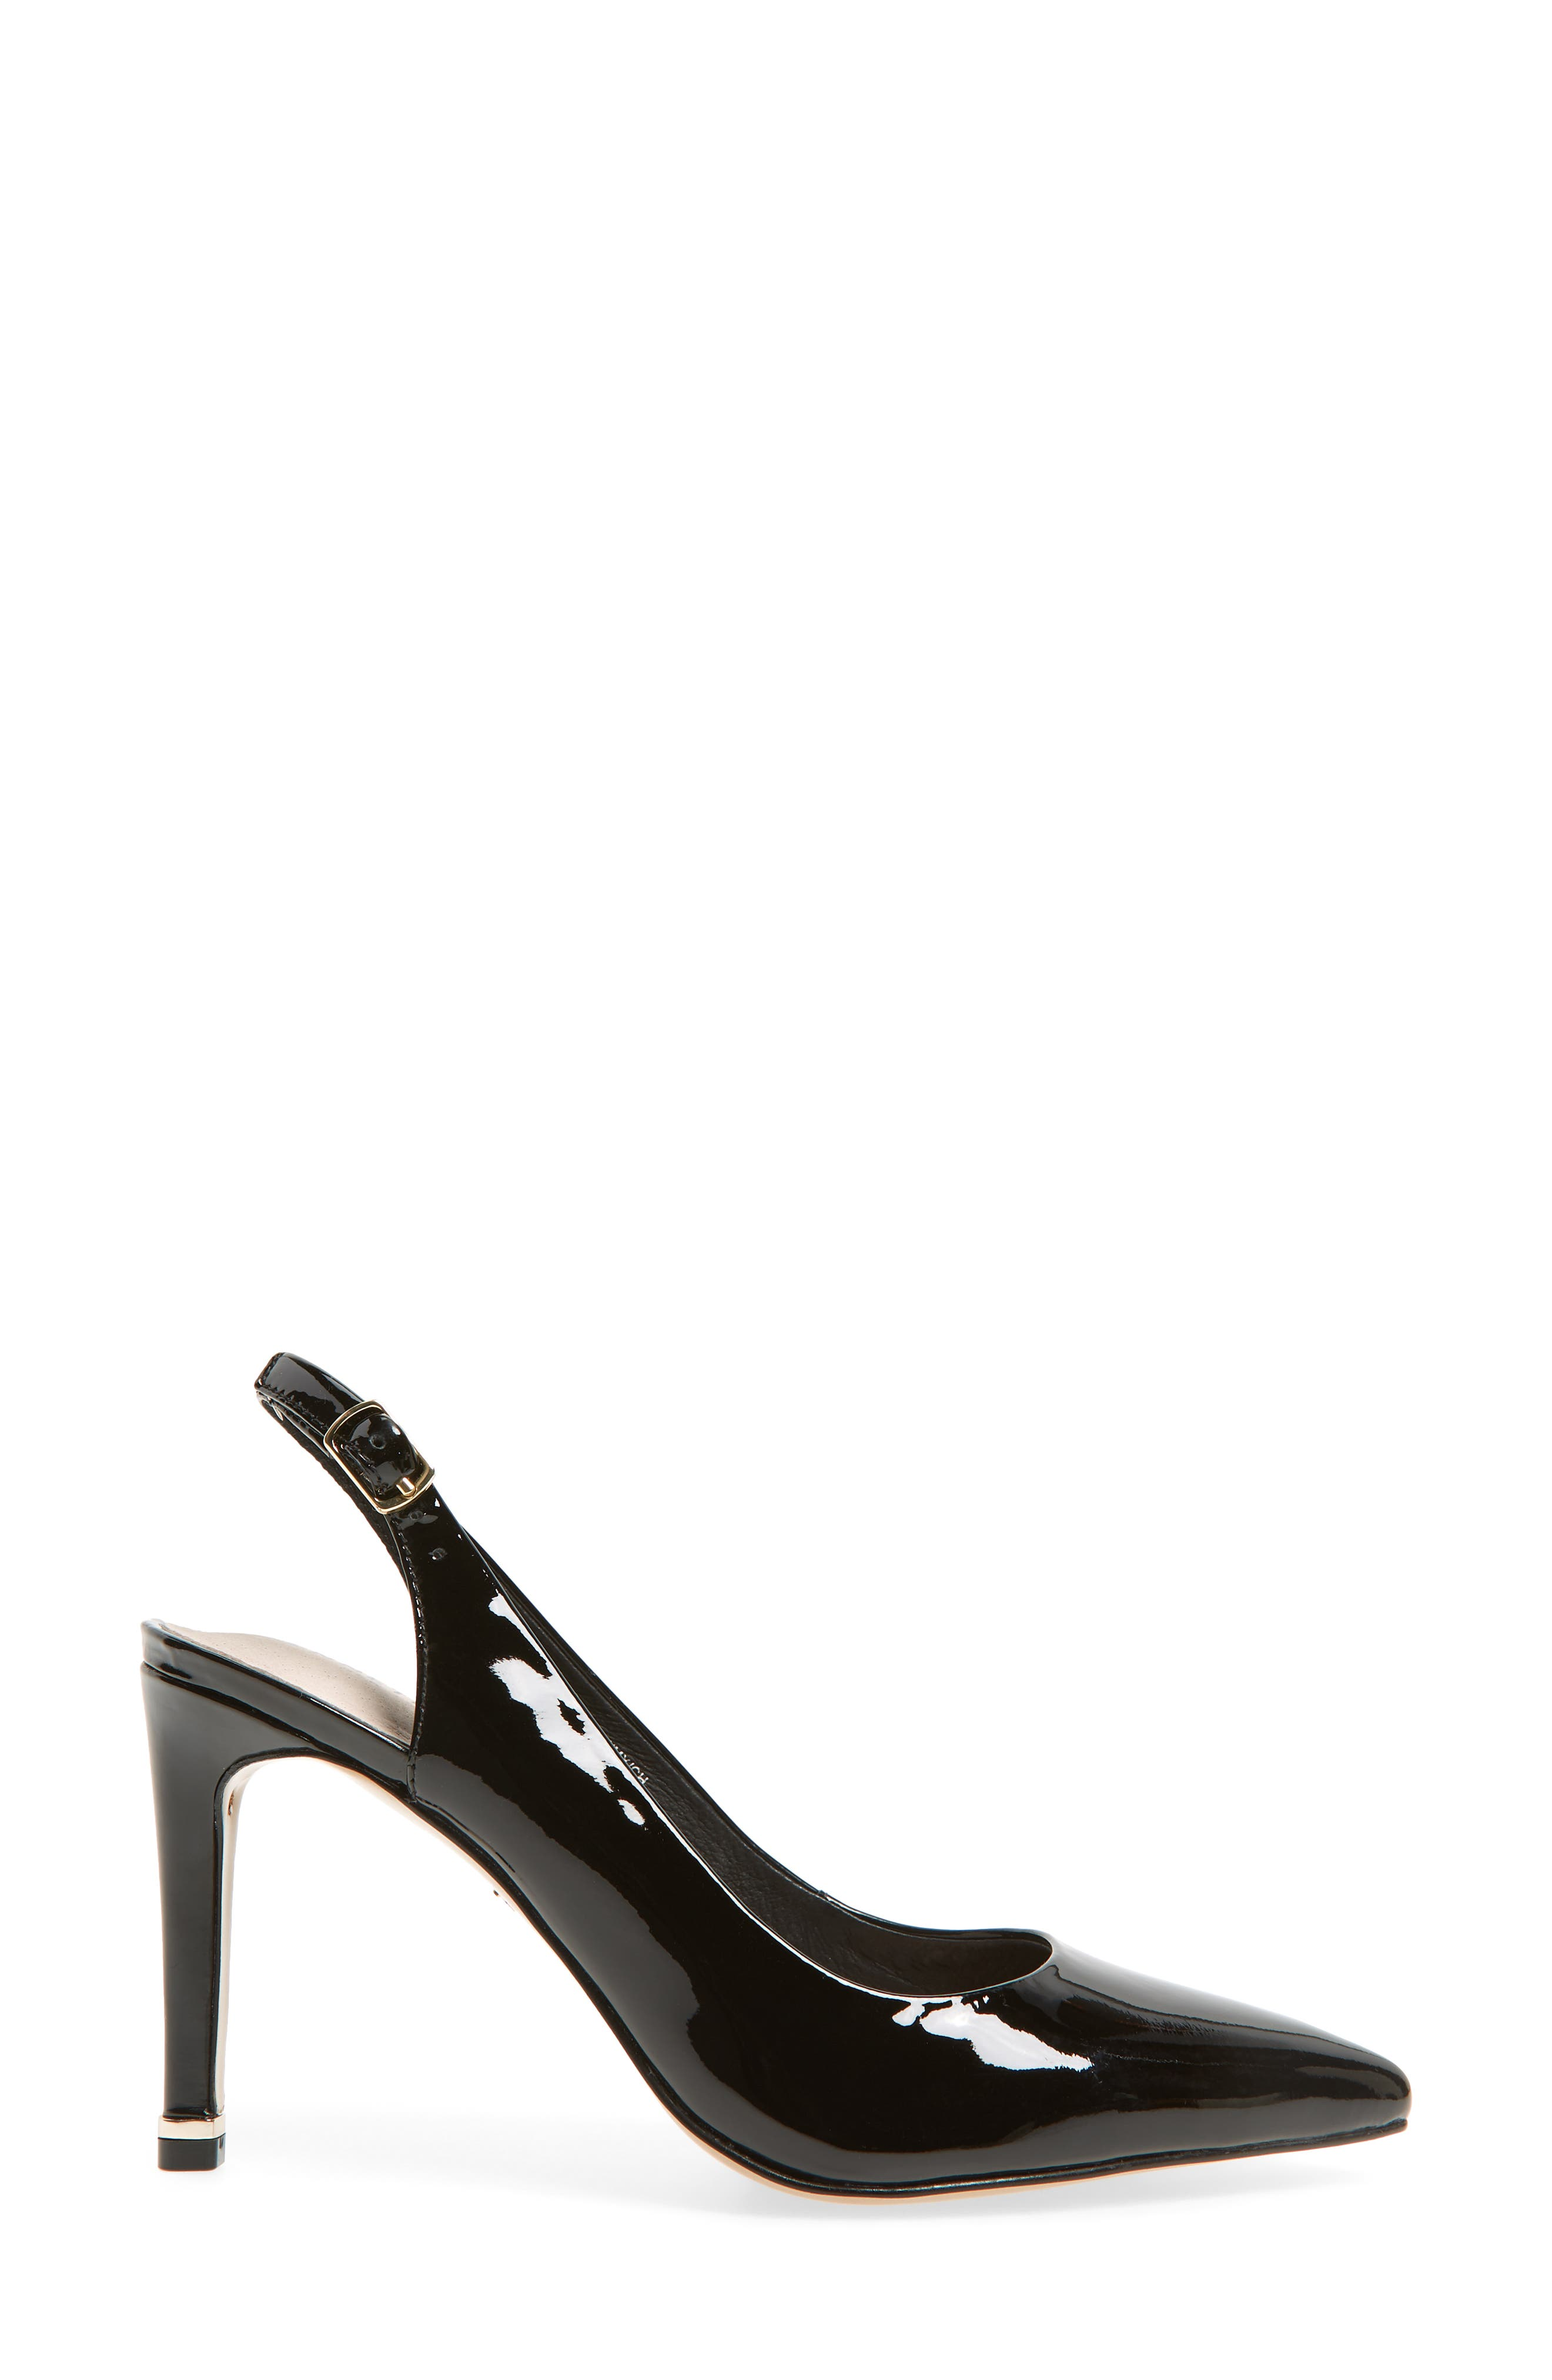 KENNETH COLE NEW YORK,                             Riley 85 Slingback Pump,                             Alternate thumbnail 3, color,                             BLACK PATENT LEATHER